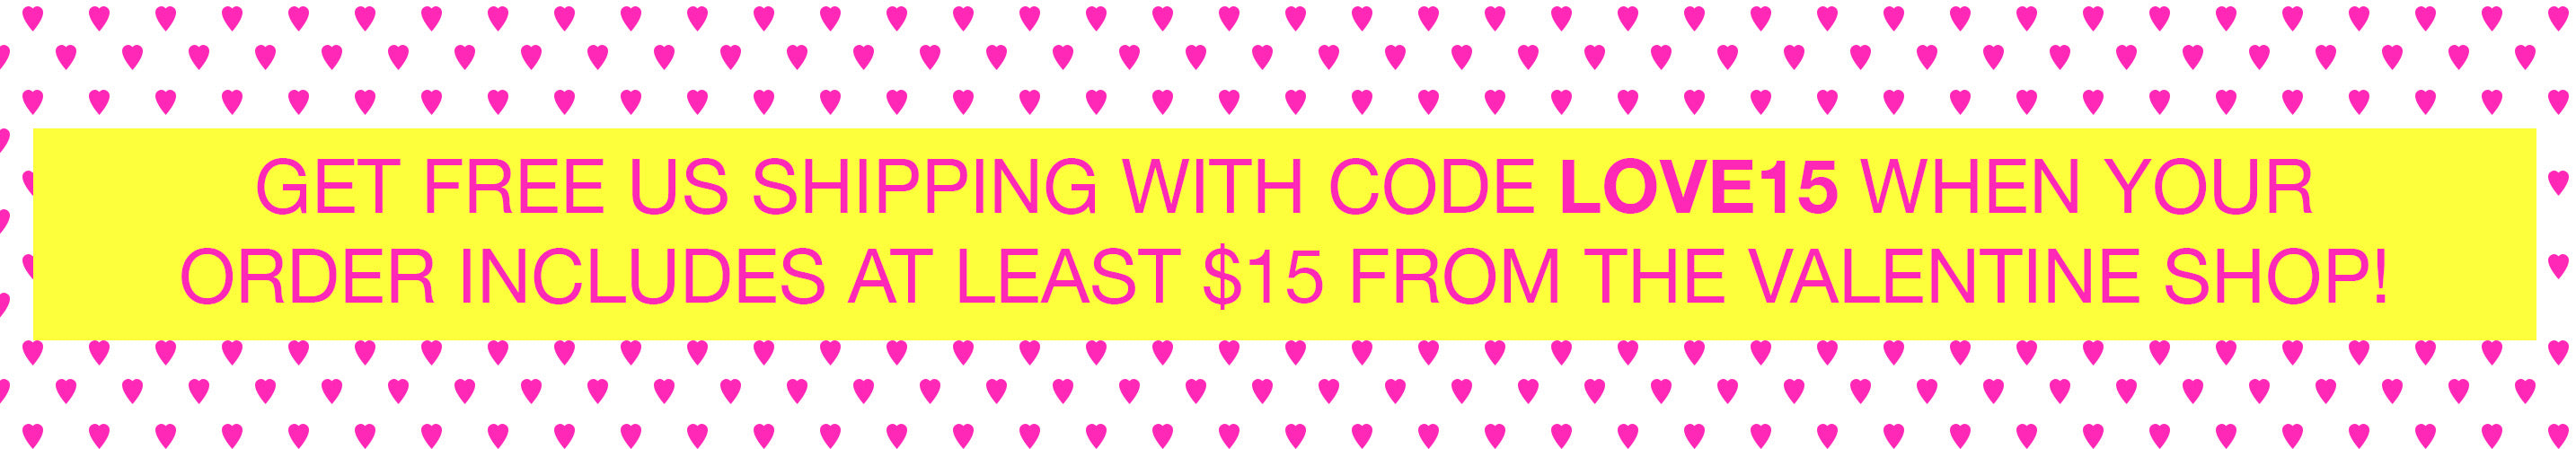 Get FREE US shipping when your order includes at least $15 from Mari Orr's Valentine Shop! || www.mariorr.com/valentines